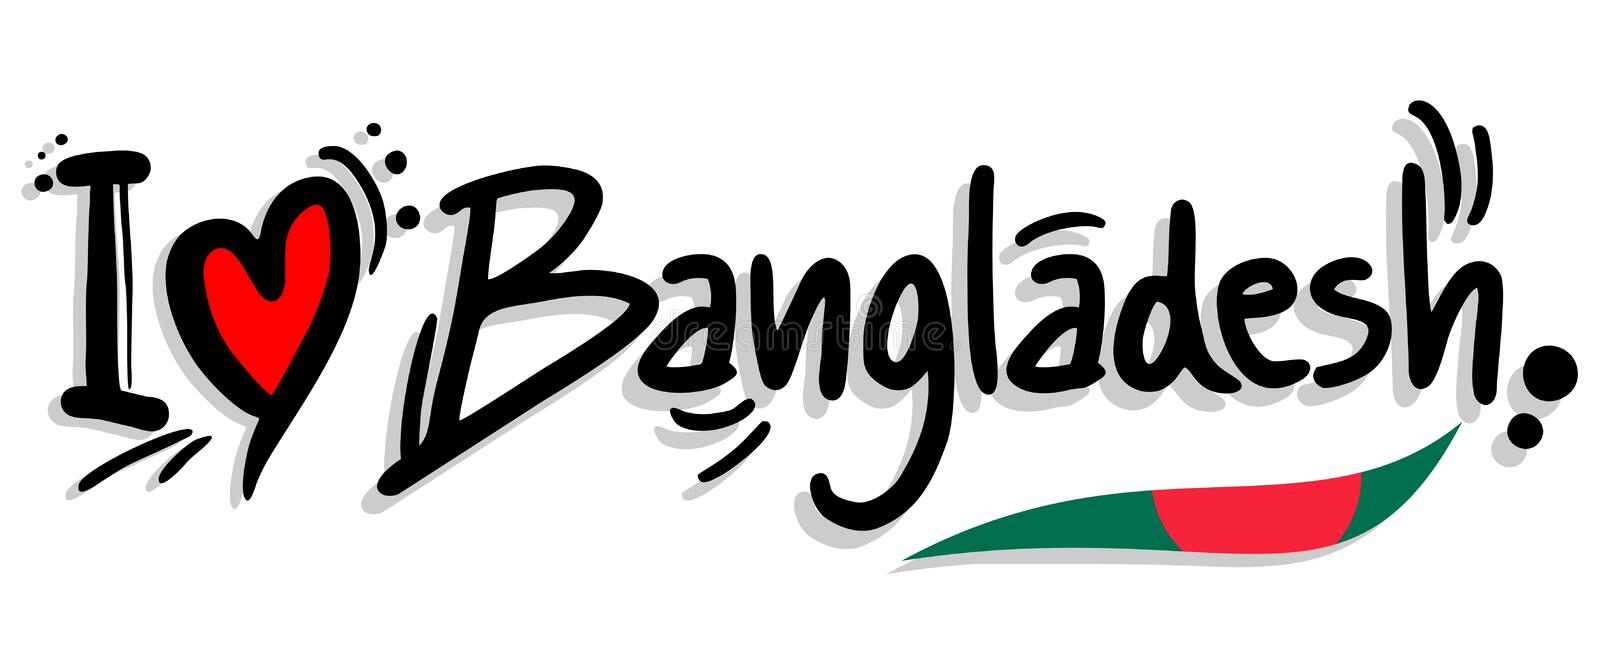 Download I love bangladesh stock image. Image of message, tiger - 31278645